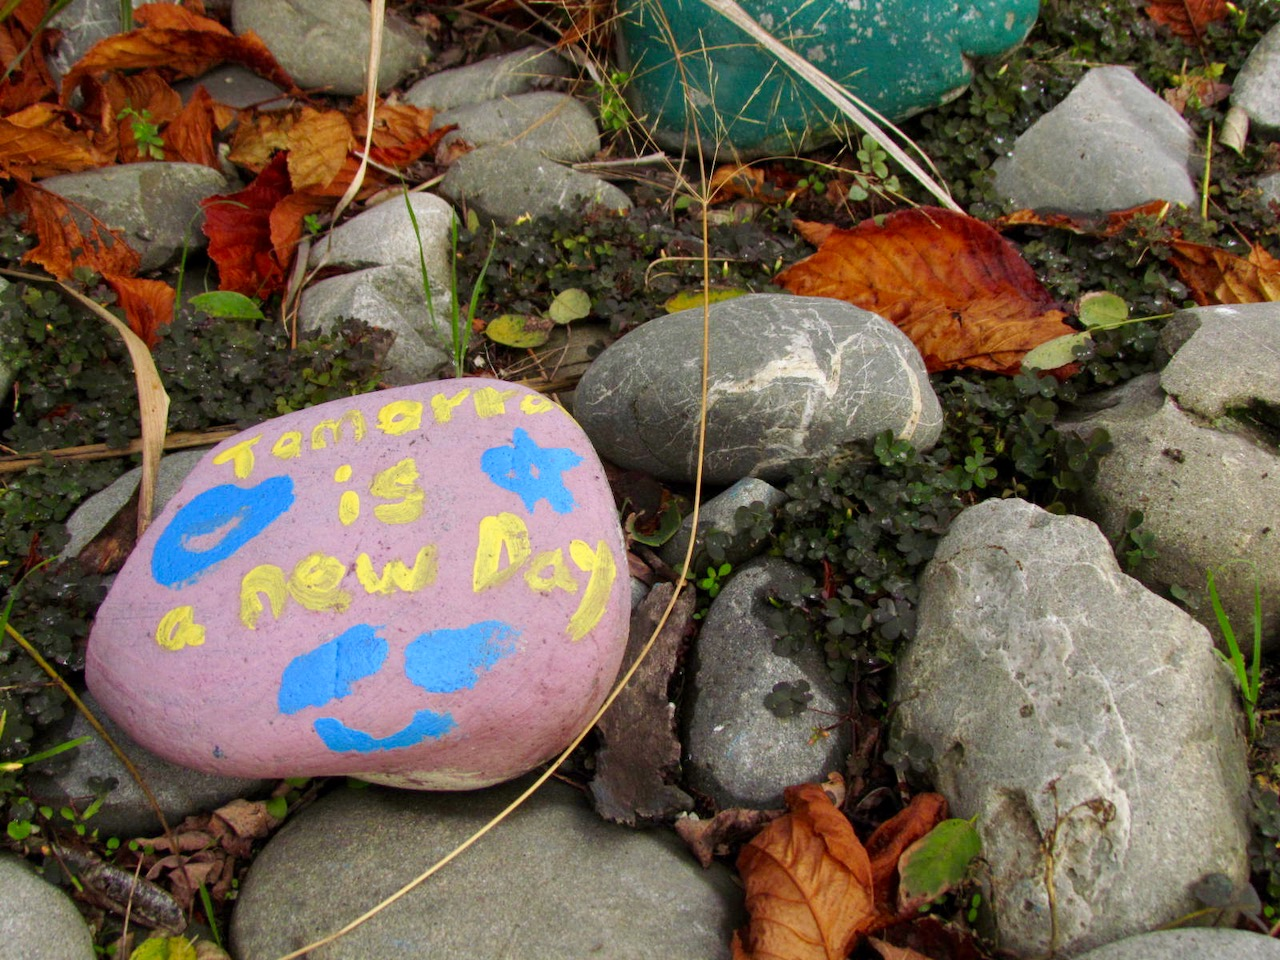 rocks in the Recovery Garden